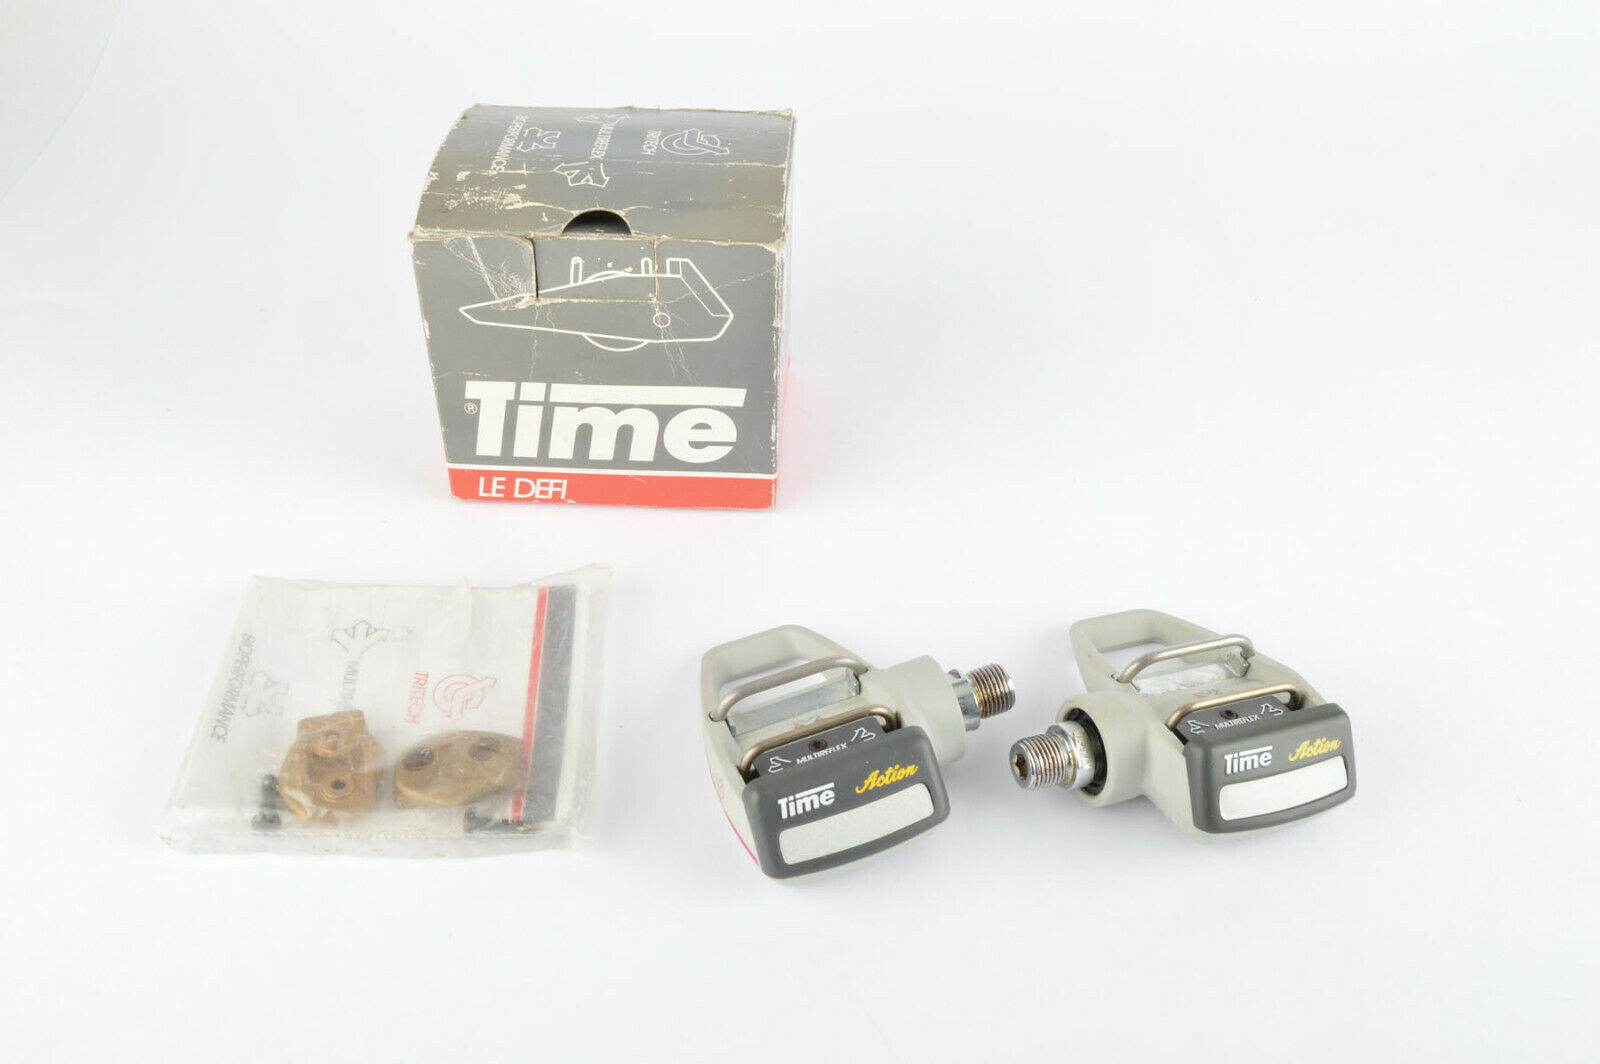 NOS NIB Time Action Clipless Pedals and Cleats from the 1990s  | Sonderpreis